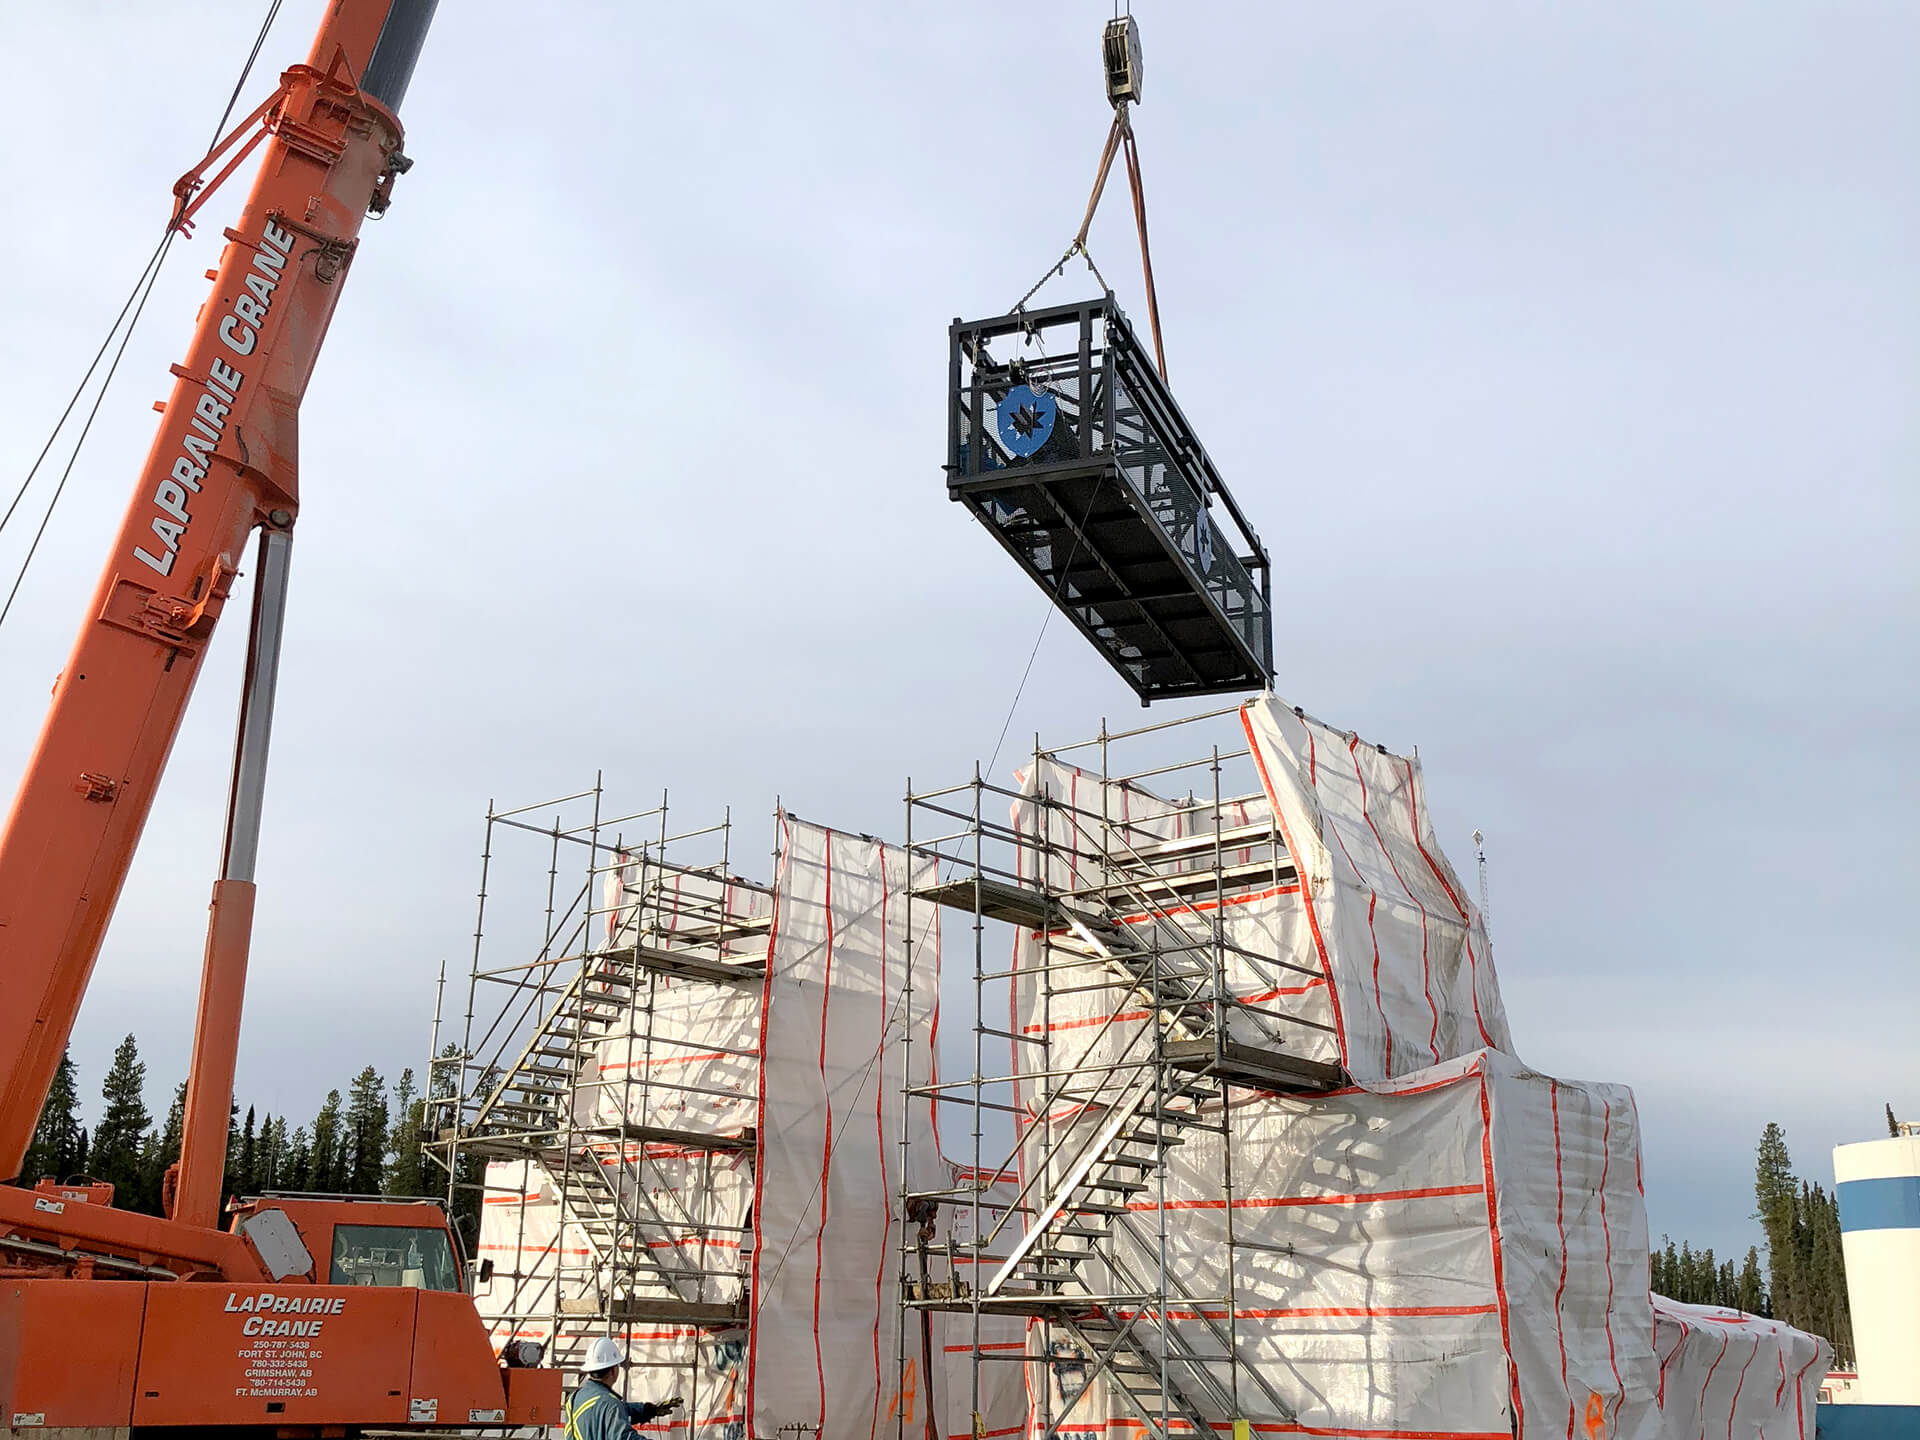 Blast Control DBX Deployable Barrier System hoisted by crane